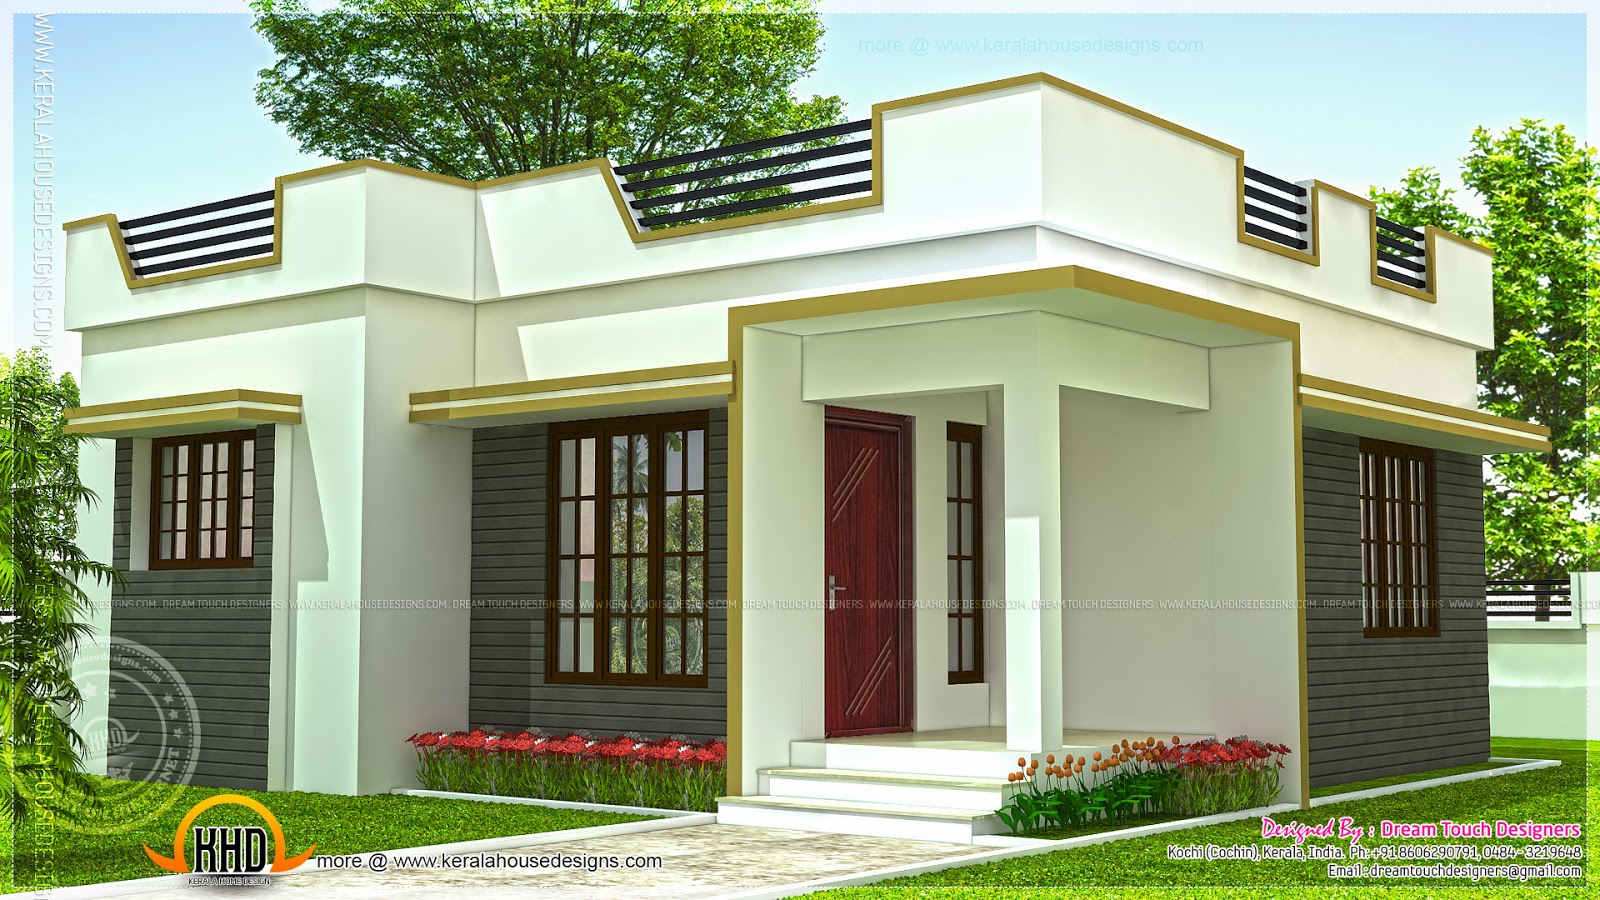 Kerala small house plans joy studio design gallery for Home designs for kerala